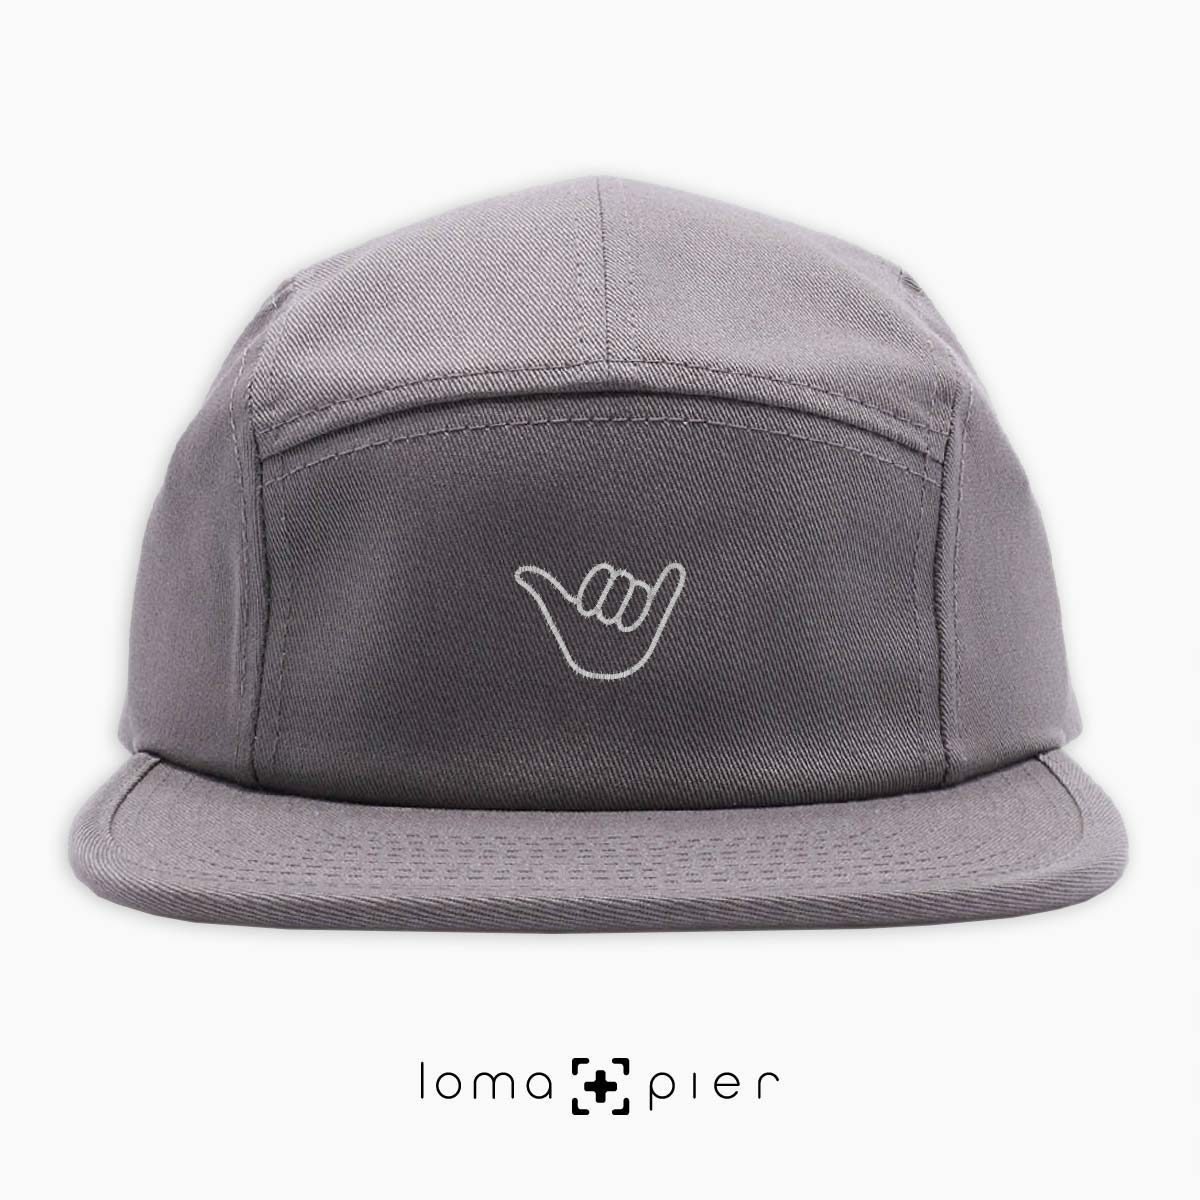 HANG LOOSE icon embroidered on a grey cotton 5-panel hat by loma+pier hat store